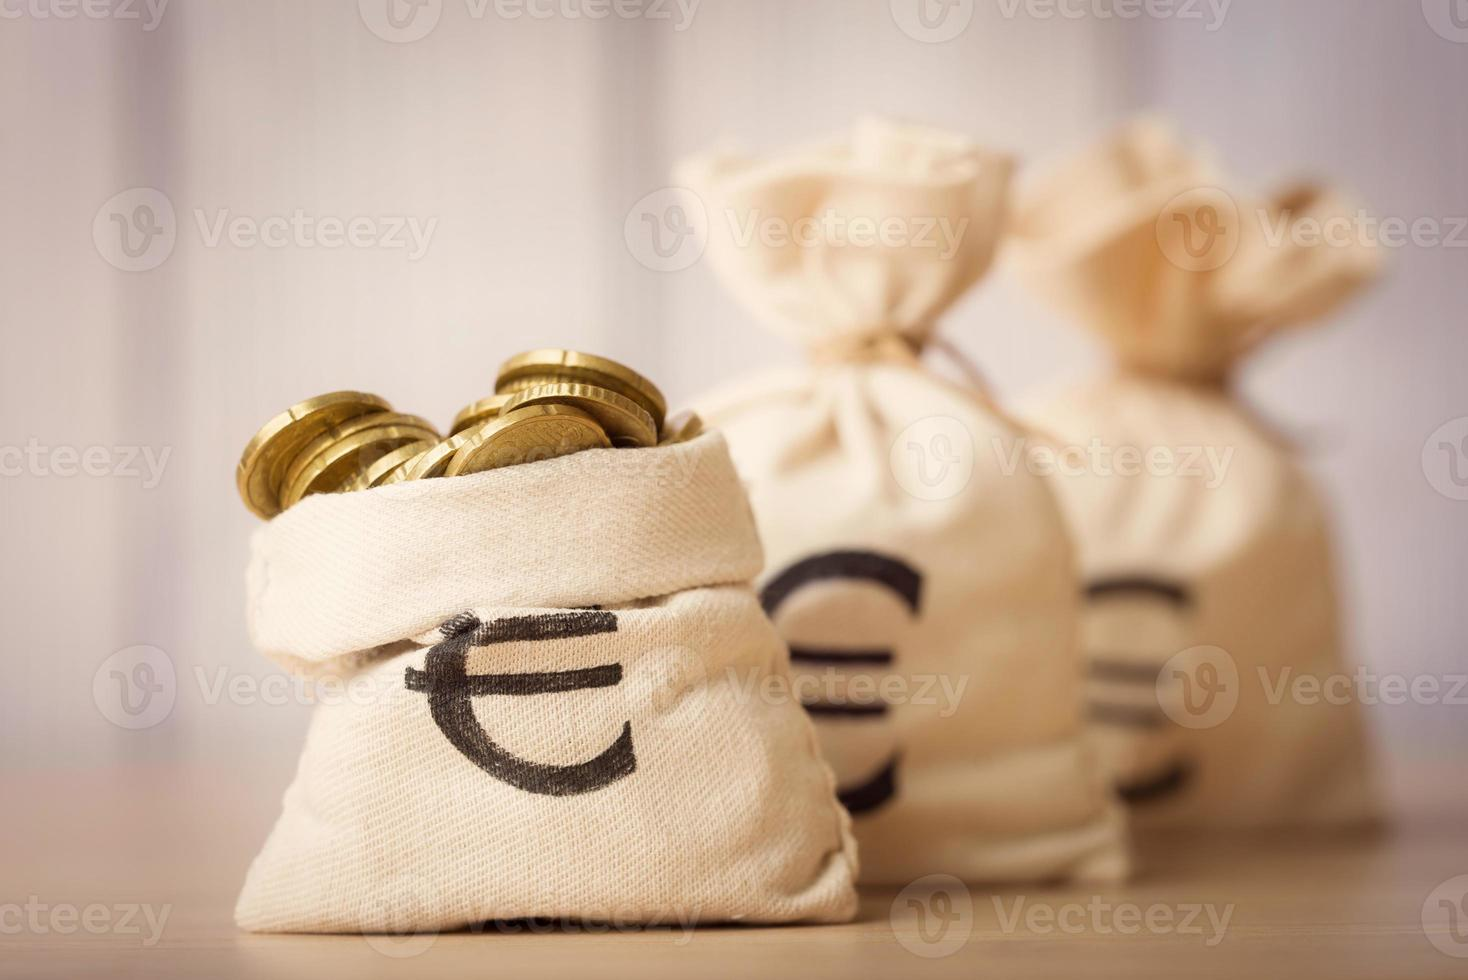 Money bags with euro coins photo